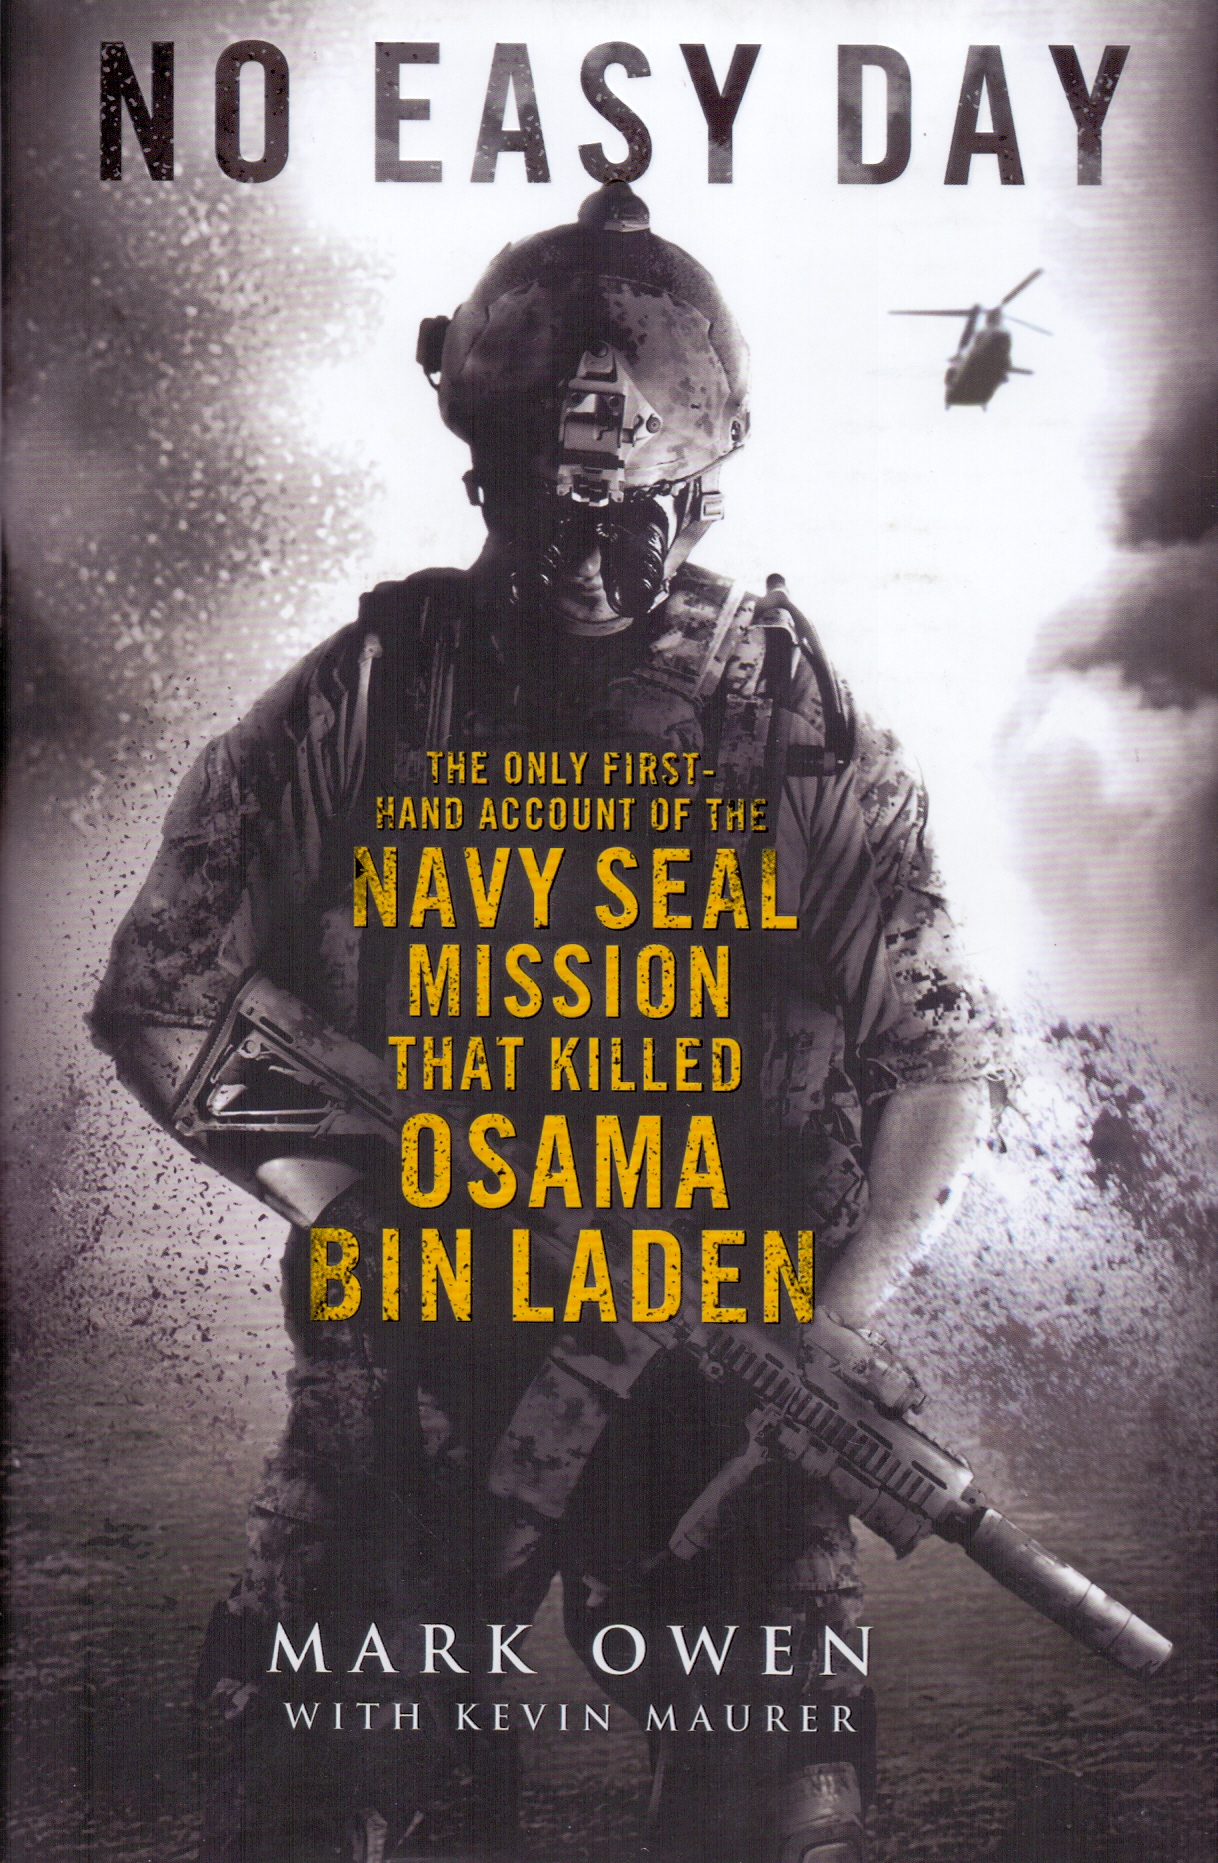 No Easy Day: The Only First-hand Account of the Navy Seal Mission that Killed Osama bin Laden - Mark Owen [Hardcover]